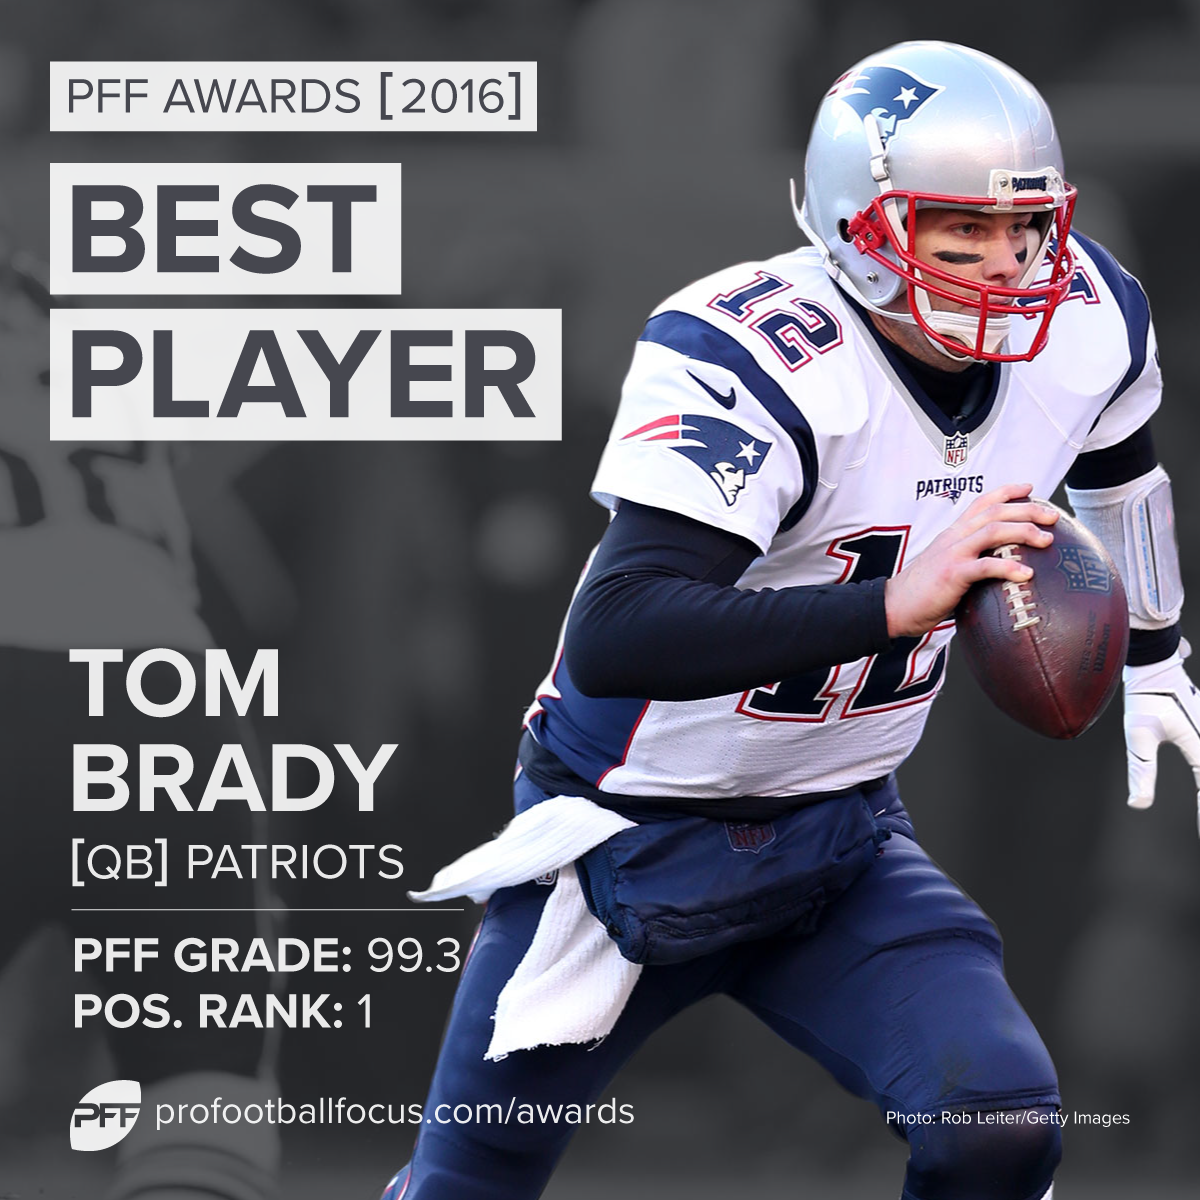 2016 PFF Best Player: Tom Brady